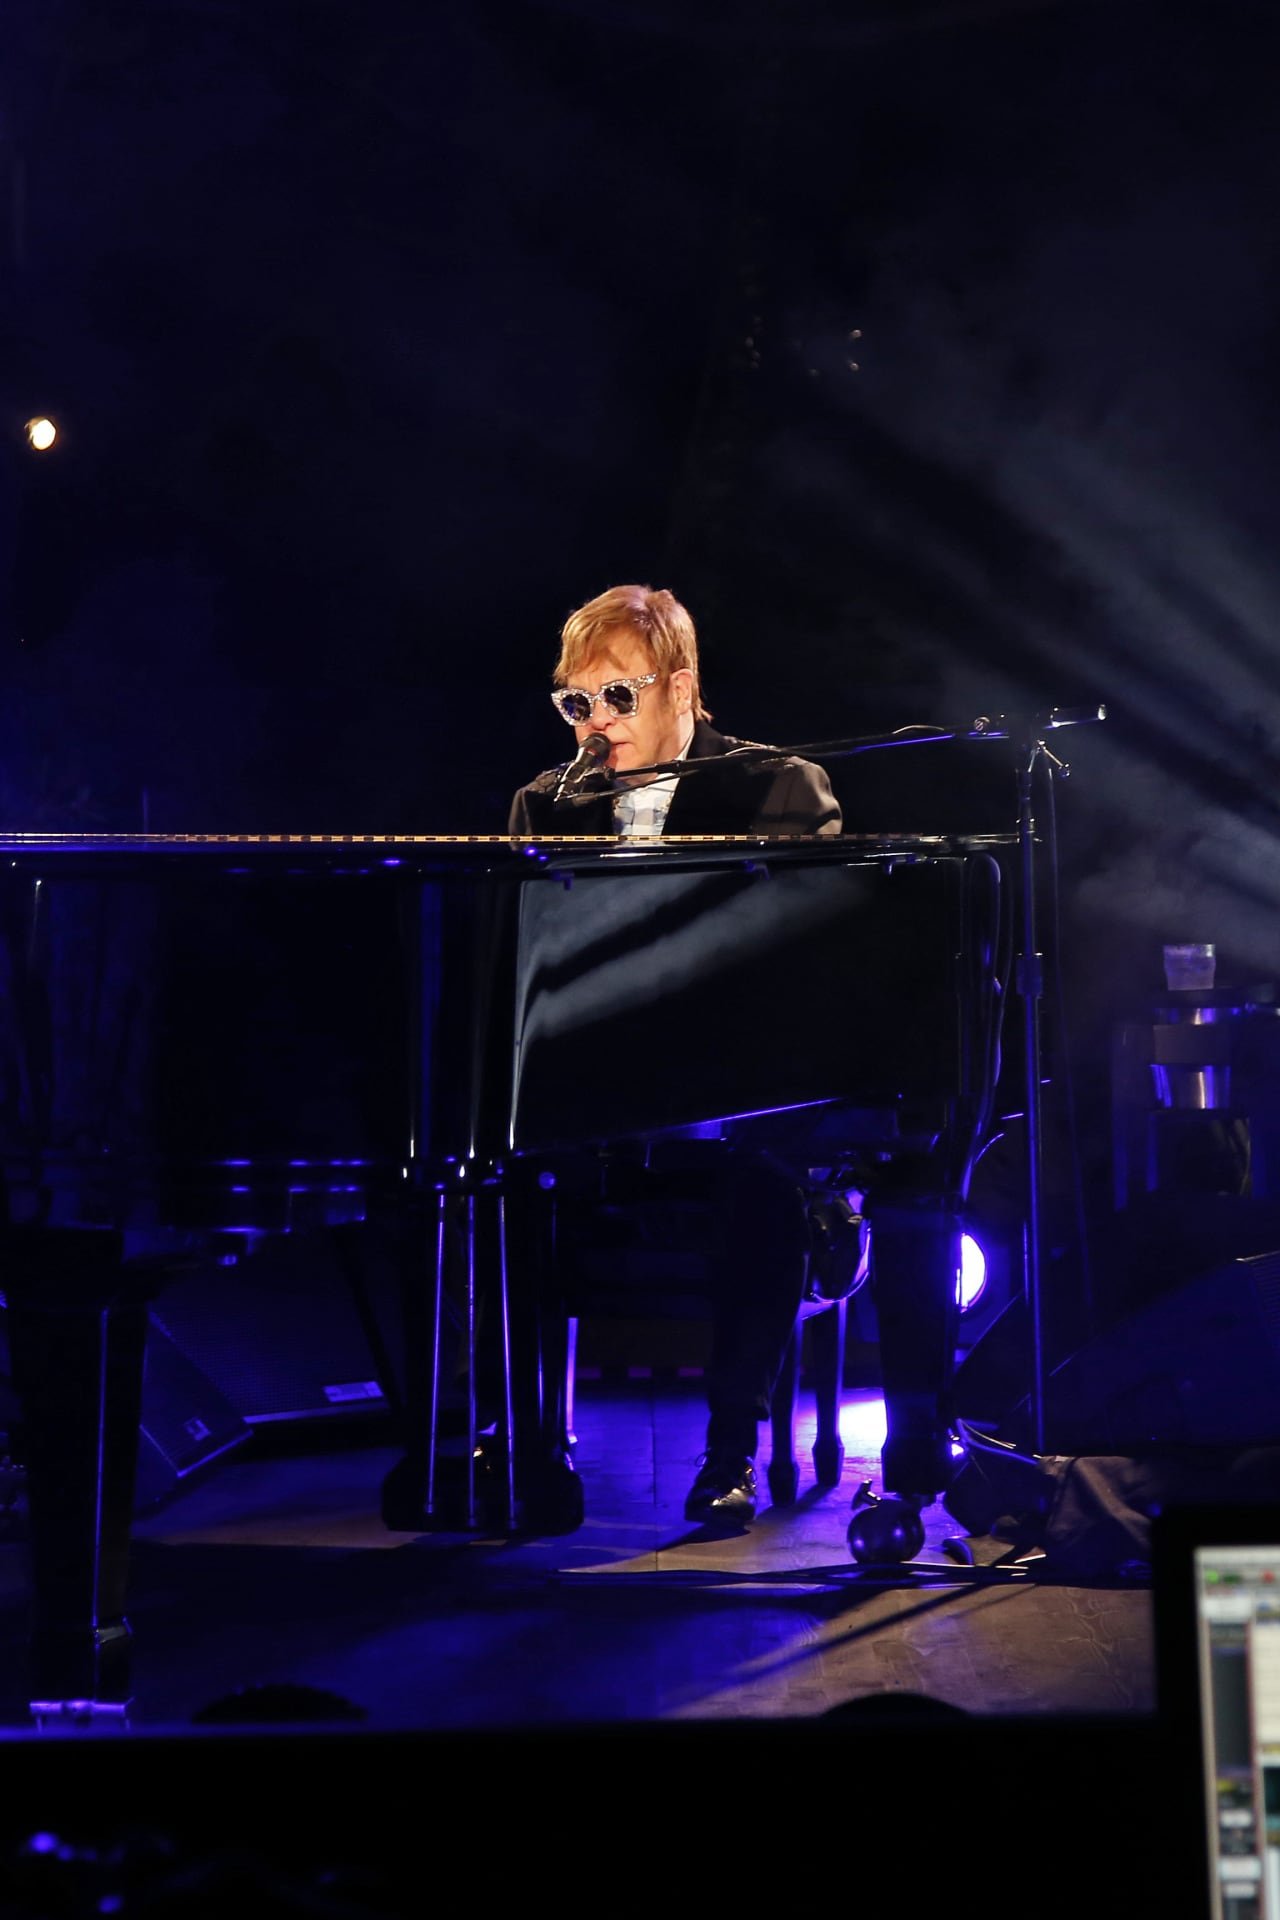 Elton John performs at Gucci resort 2019